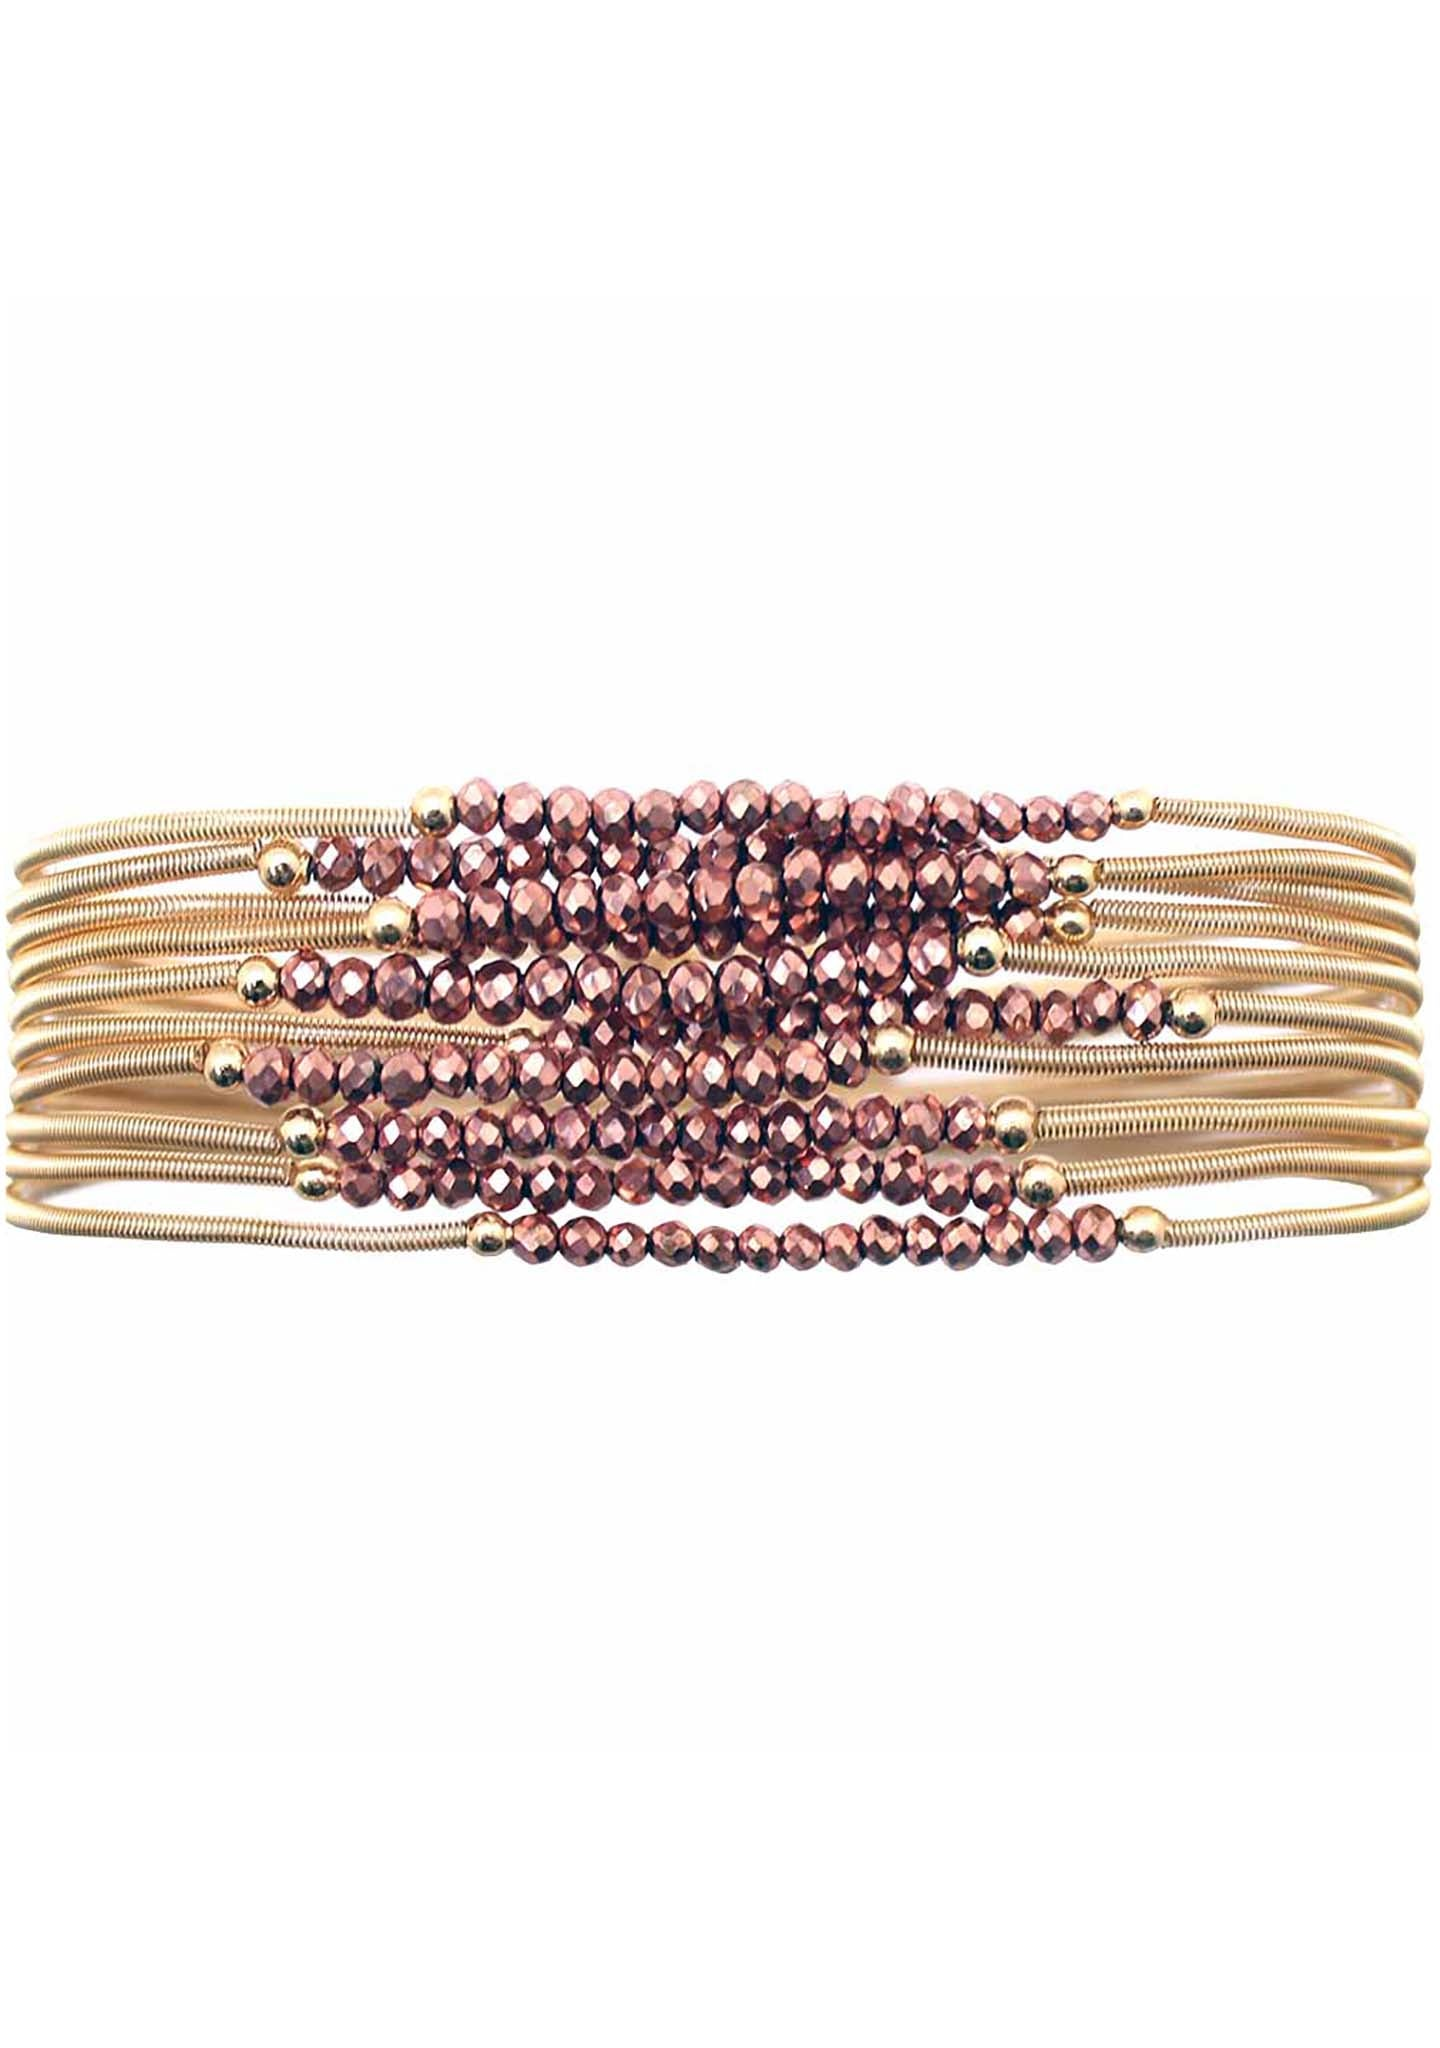 Erimish Gold Wanderlust Bracelet Stack in Rose Gold